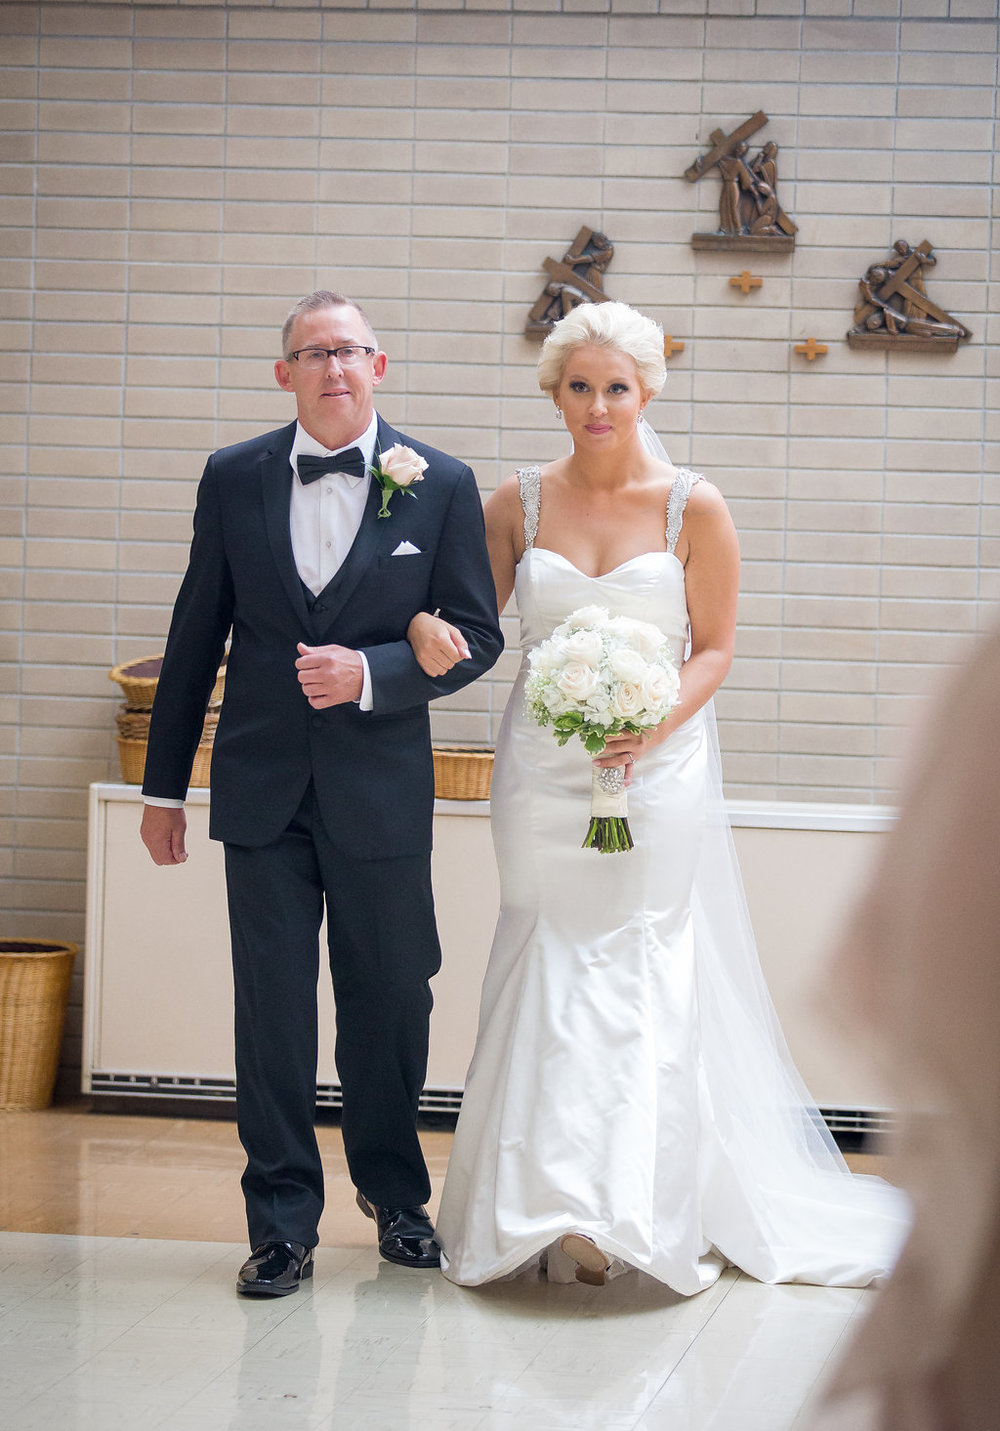 Bride walking down the aisle with Father for church wedding